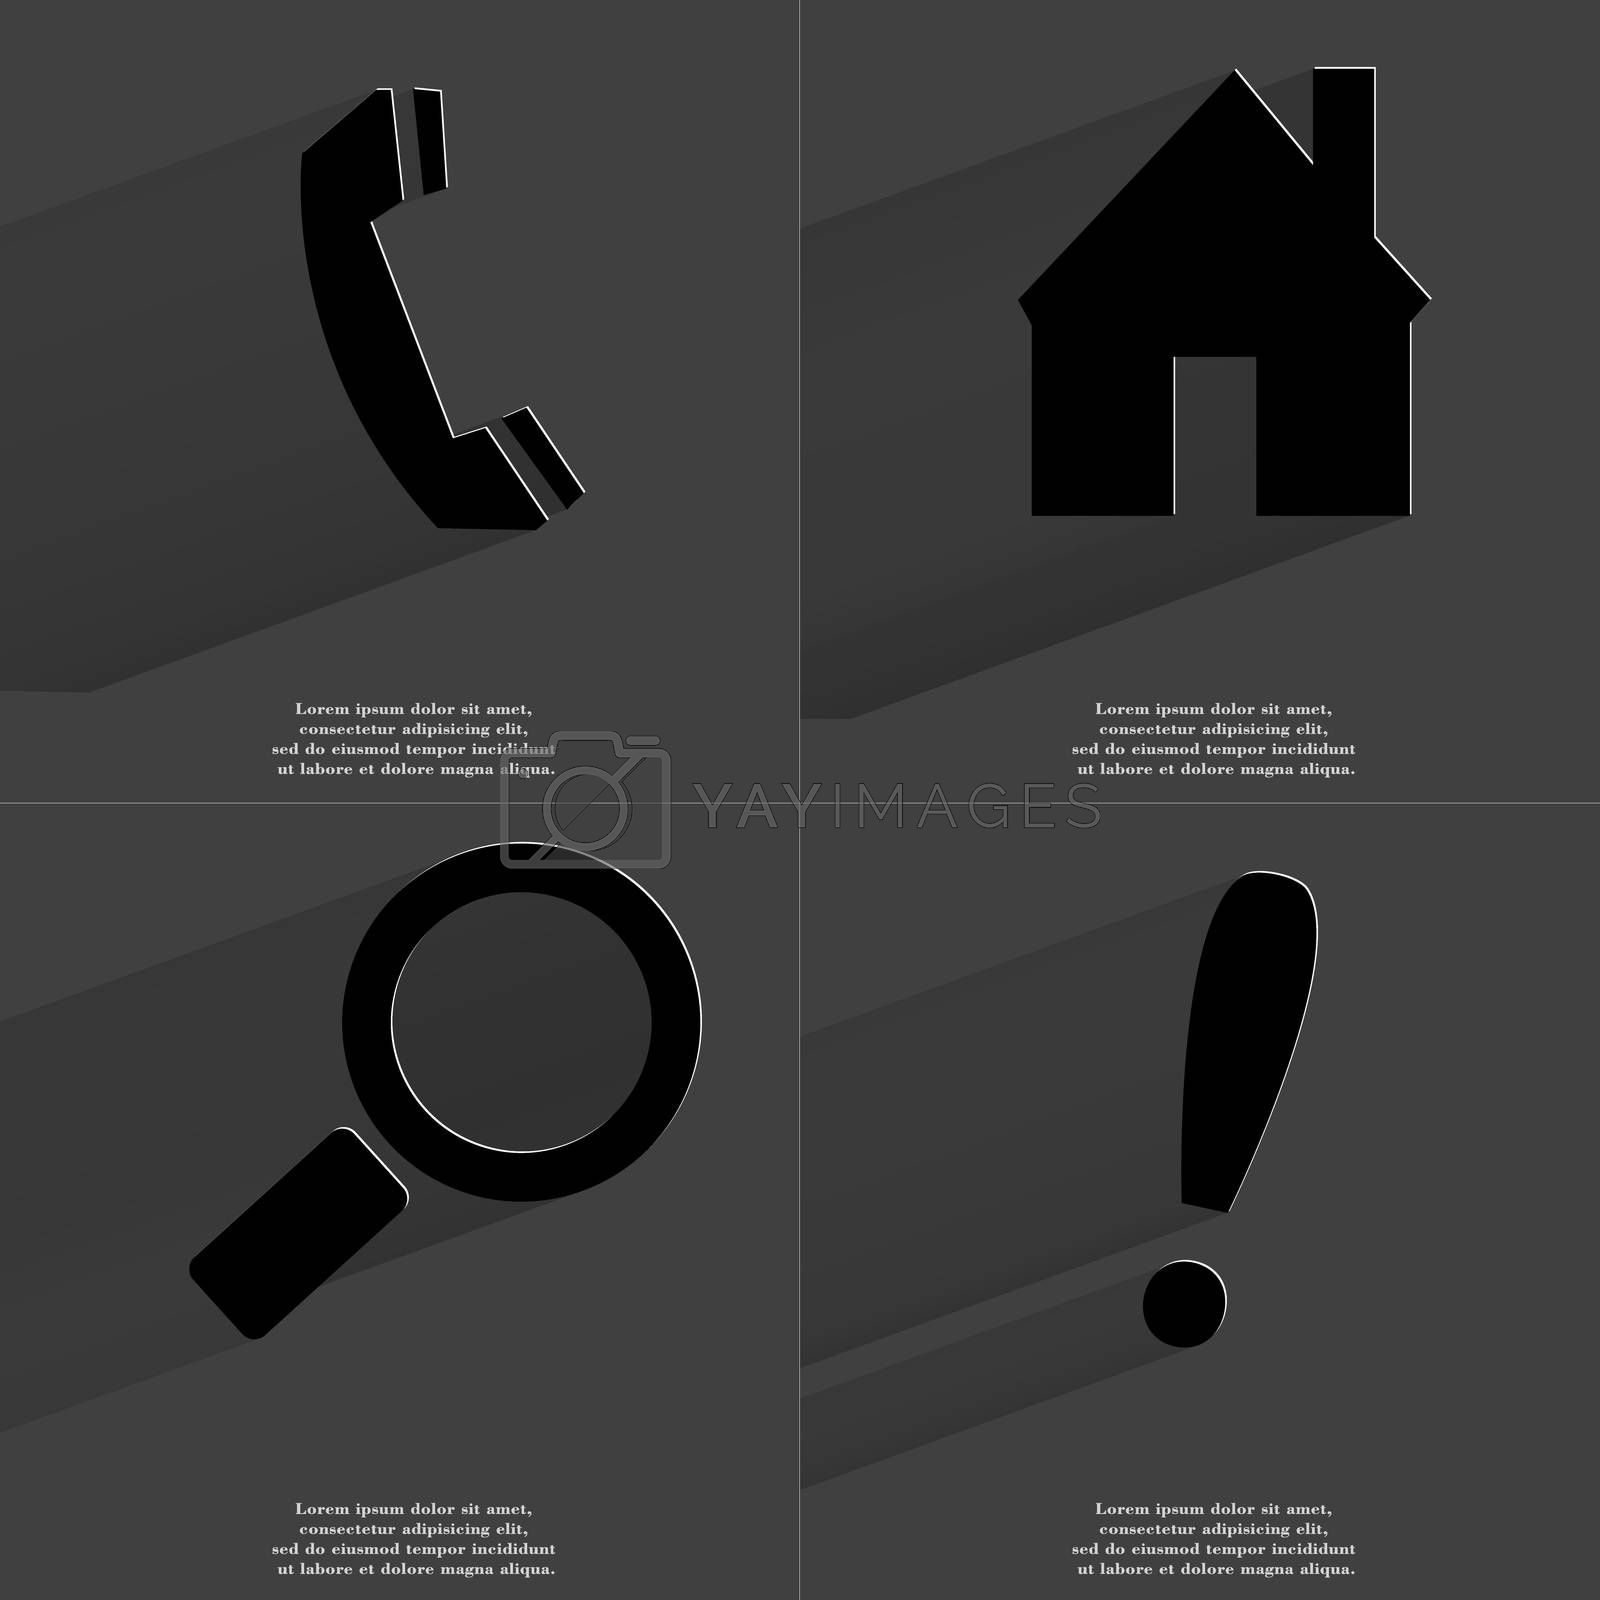 Royalty free image of Receiver, House, Magnifying glass, Exclamation mark. Symbols with long shadow. Flat design by serhii_lohvyniuk